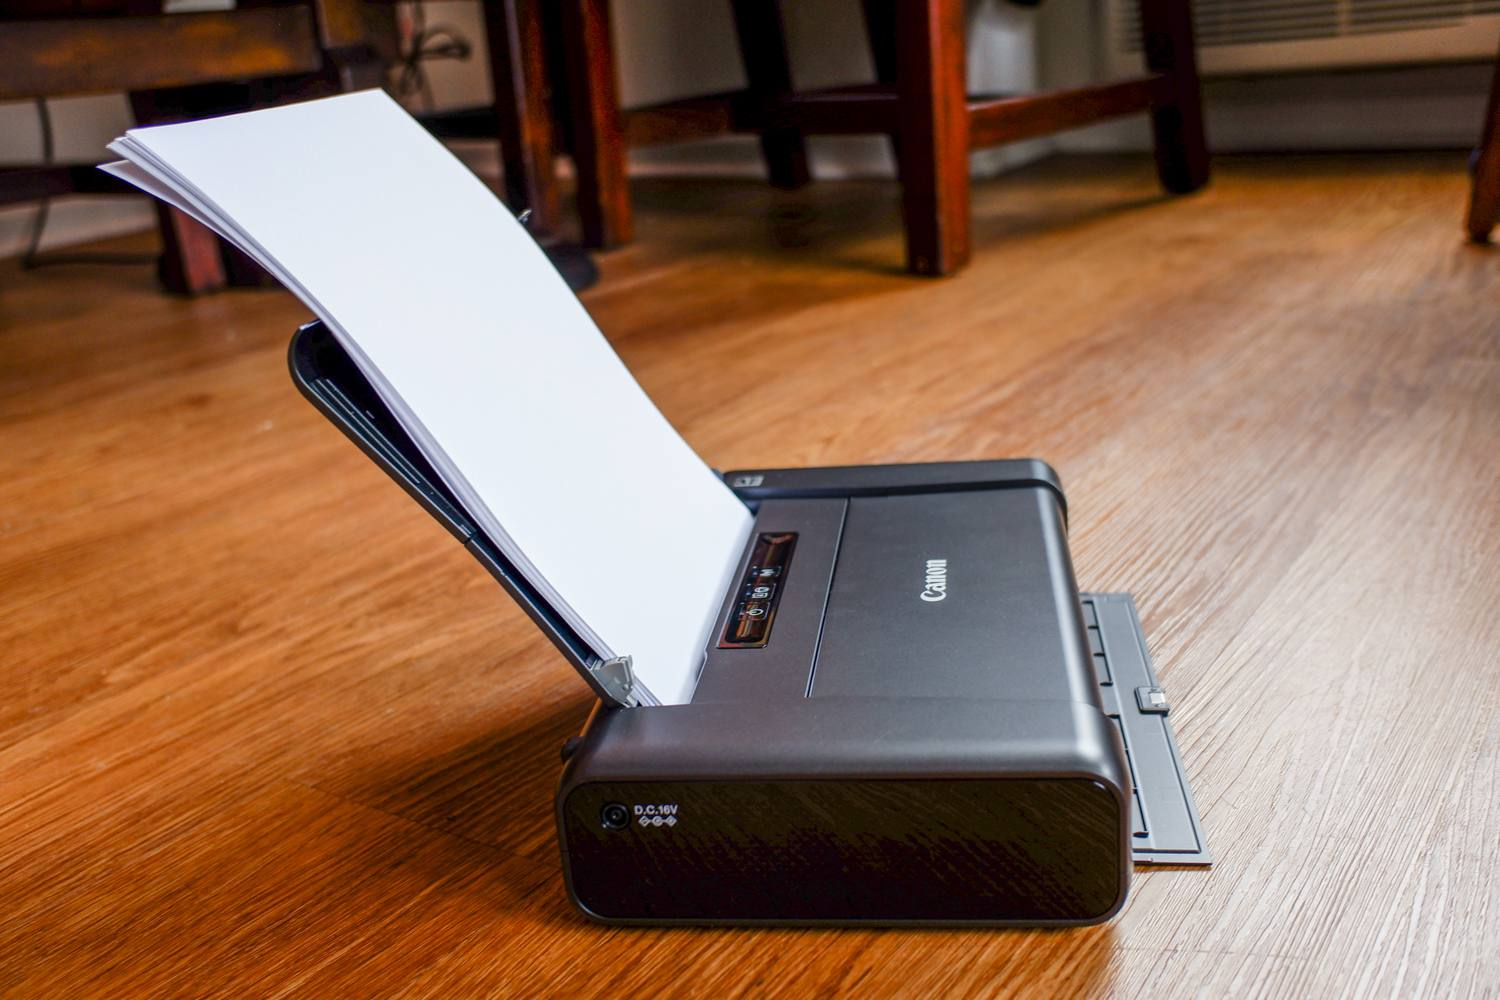 Are you finding the easy way to use mobile printer?